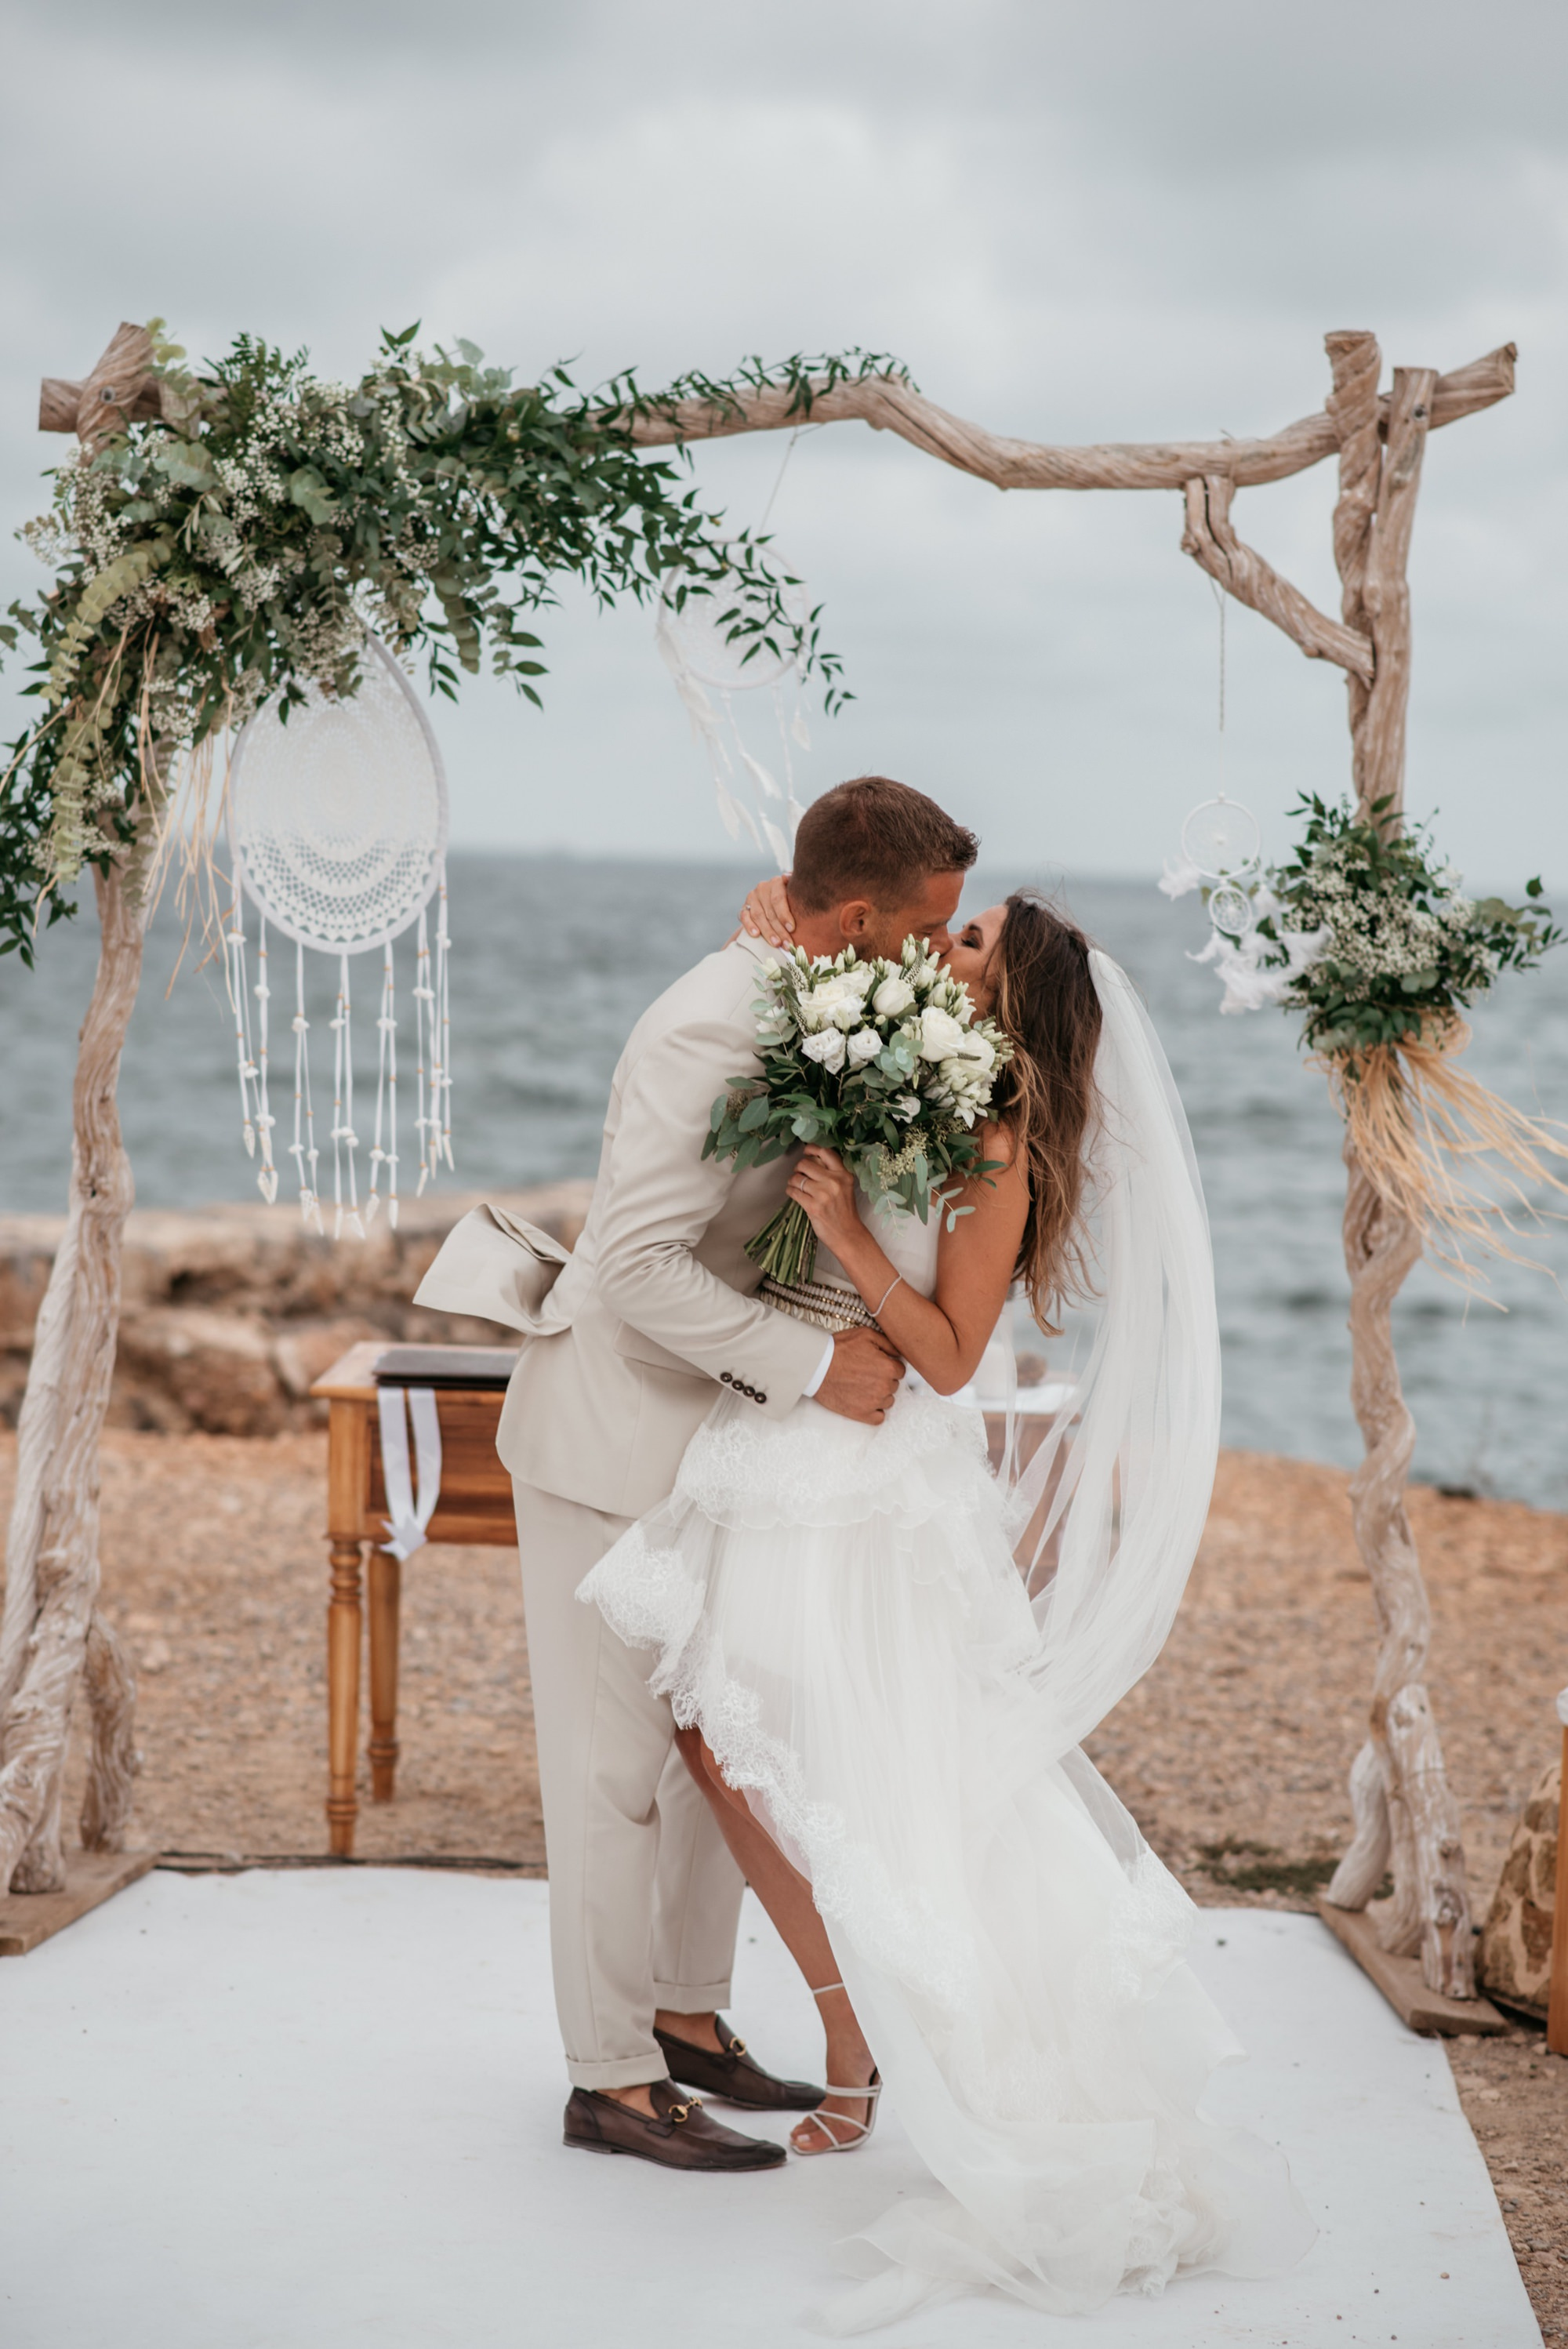 natural wedding photo destination la escollera ibiza 0072 1